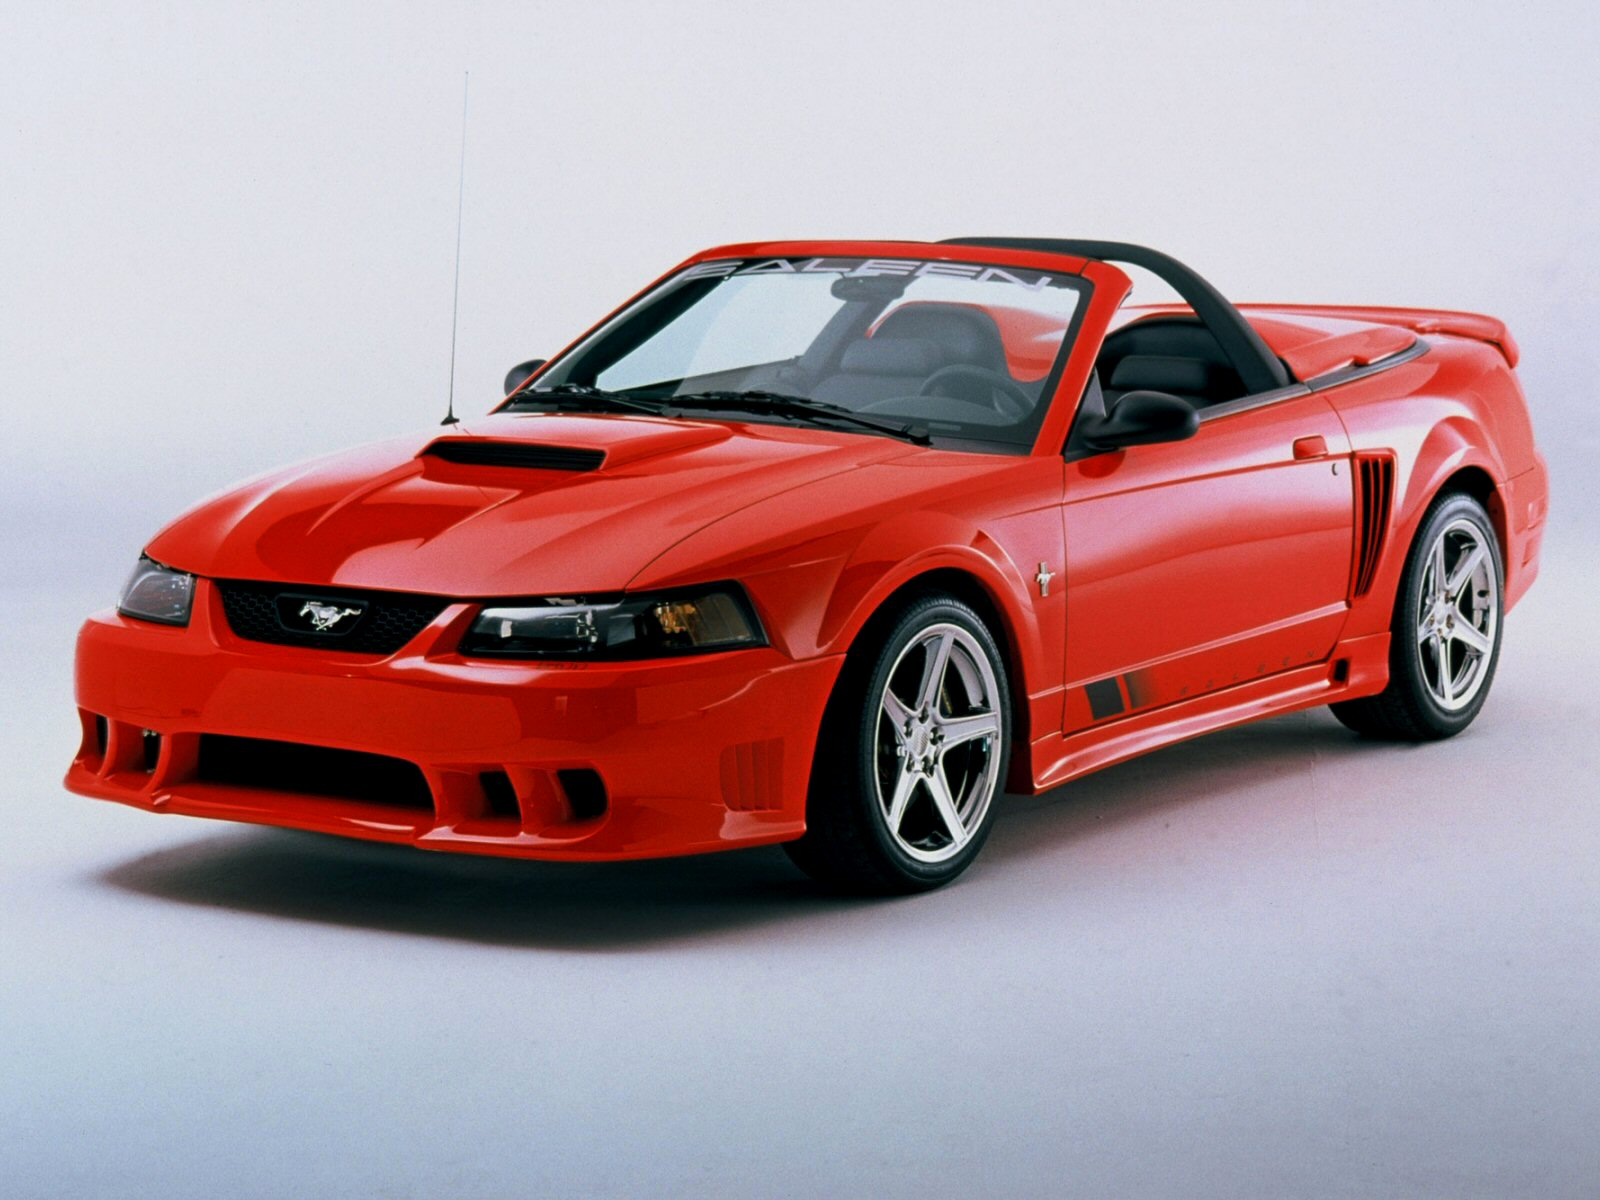 2004 Ford Mustang Saleen S281 201657 Best Quality Free High